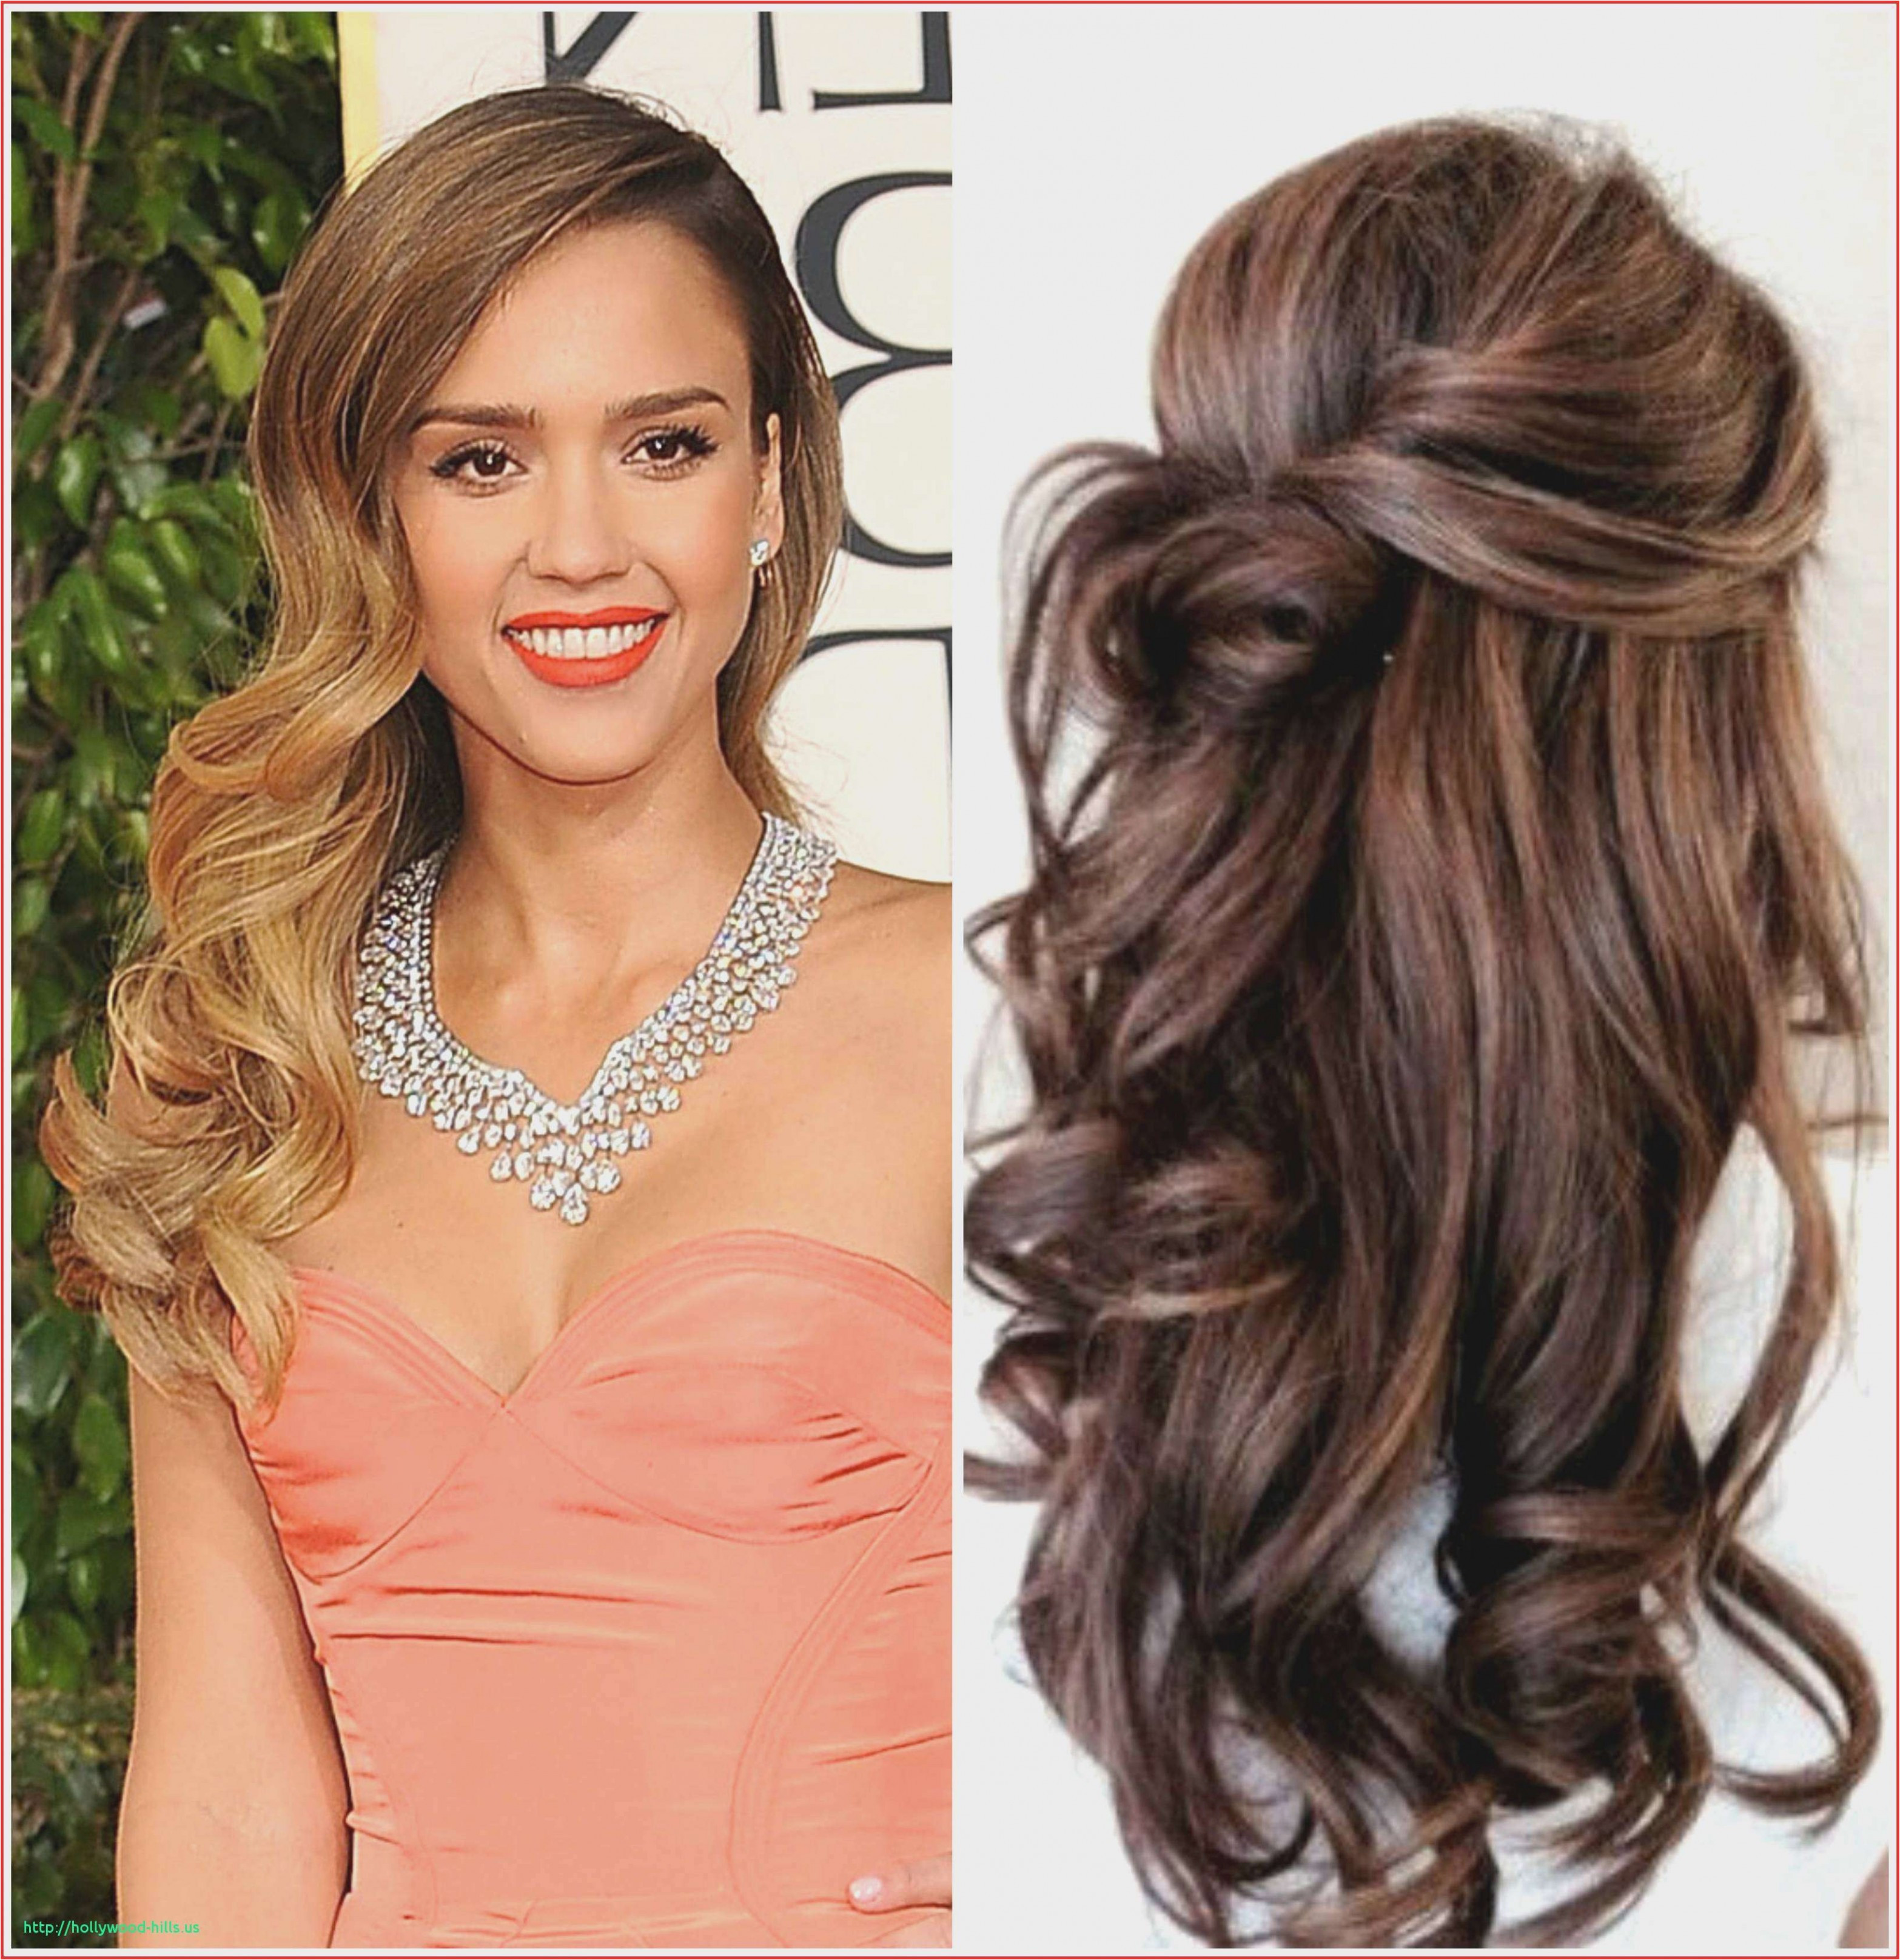 Cute And Easy Hairstyles For Girls With Medium Hair Unique Fresh Simple Hairstyles For Girls With